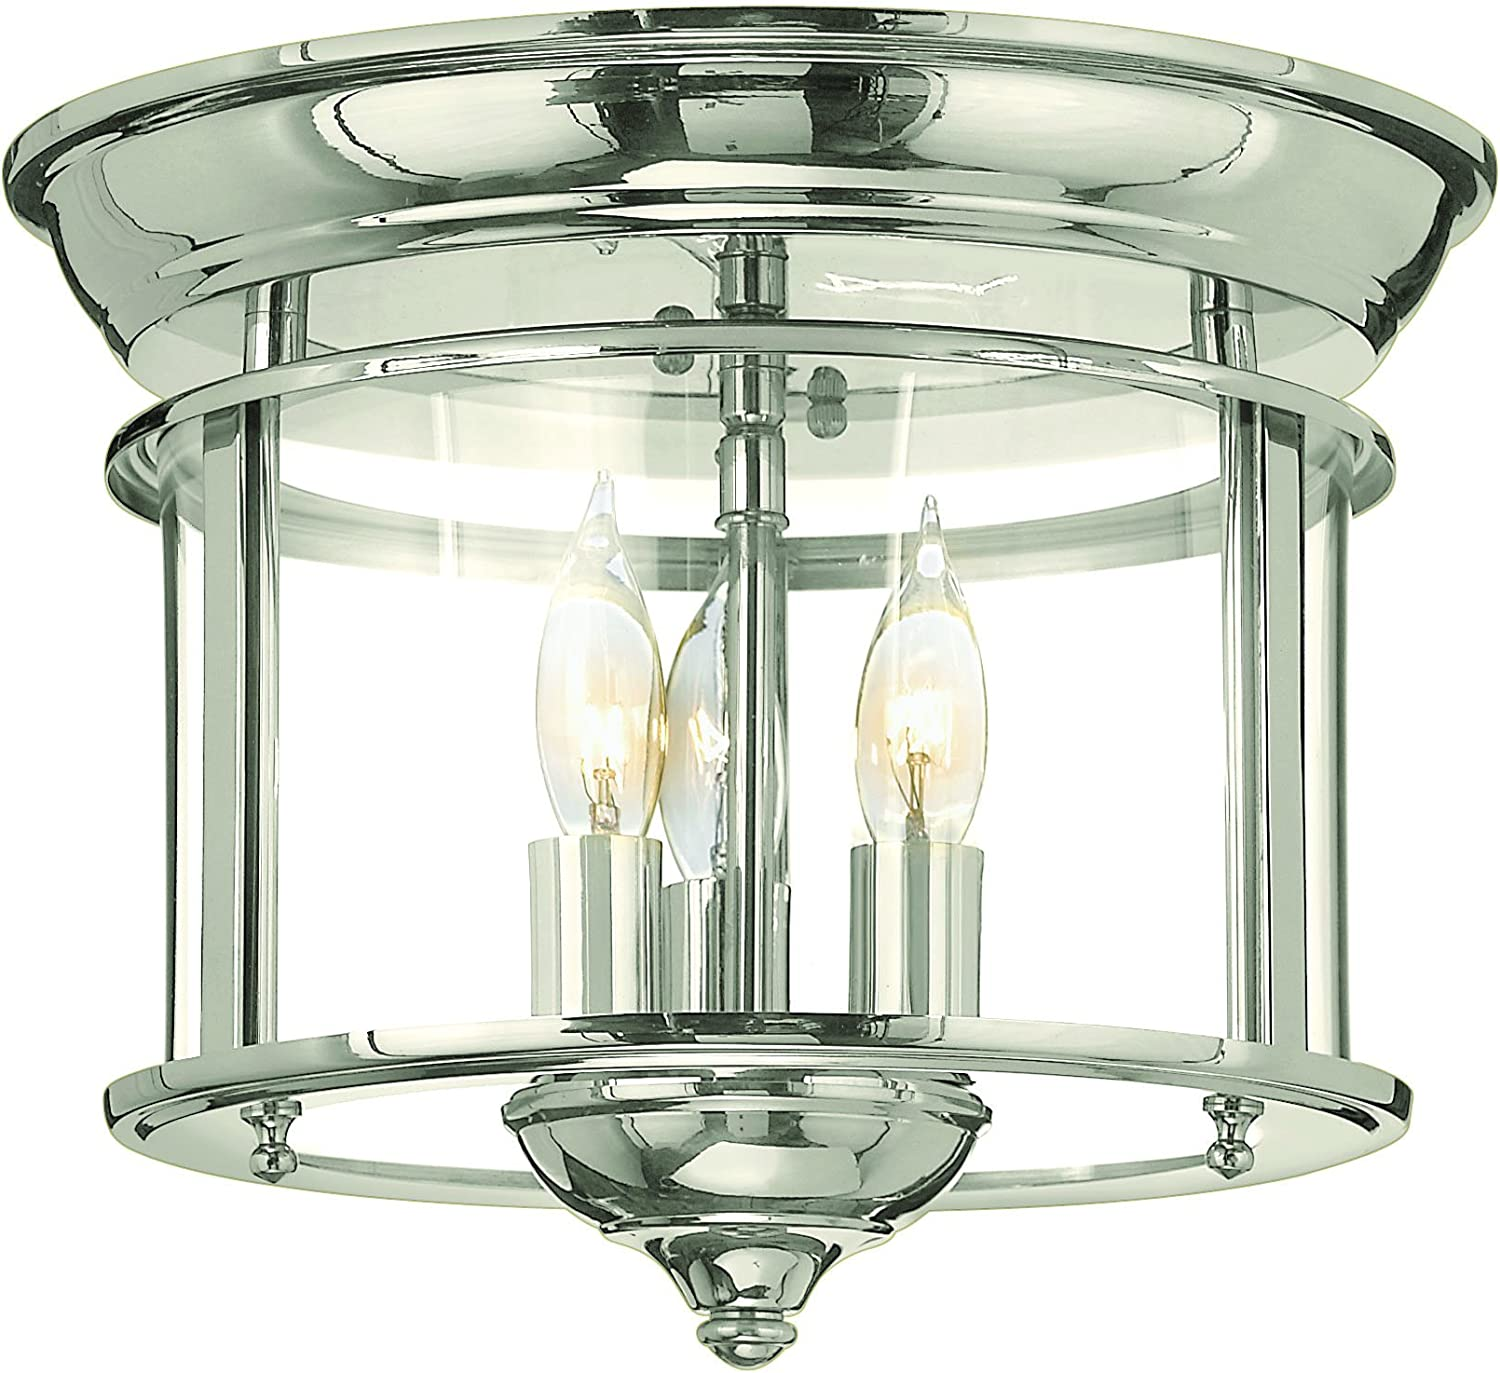 Nckl.finish Hinkley Lighting Hinkley 3473PN Traditional Three Light Flush Mount from Gentry collection in Chrome Pol